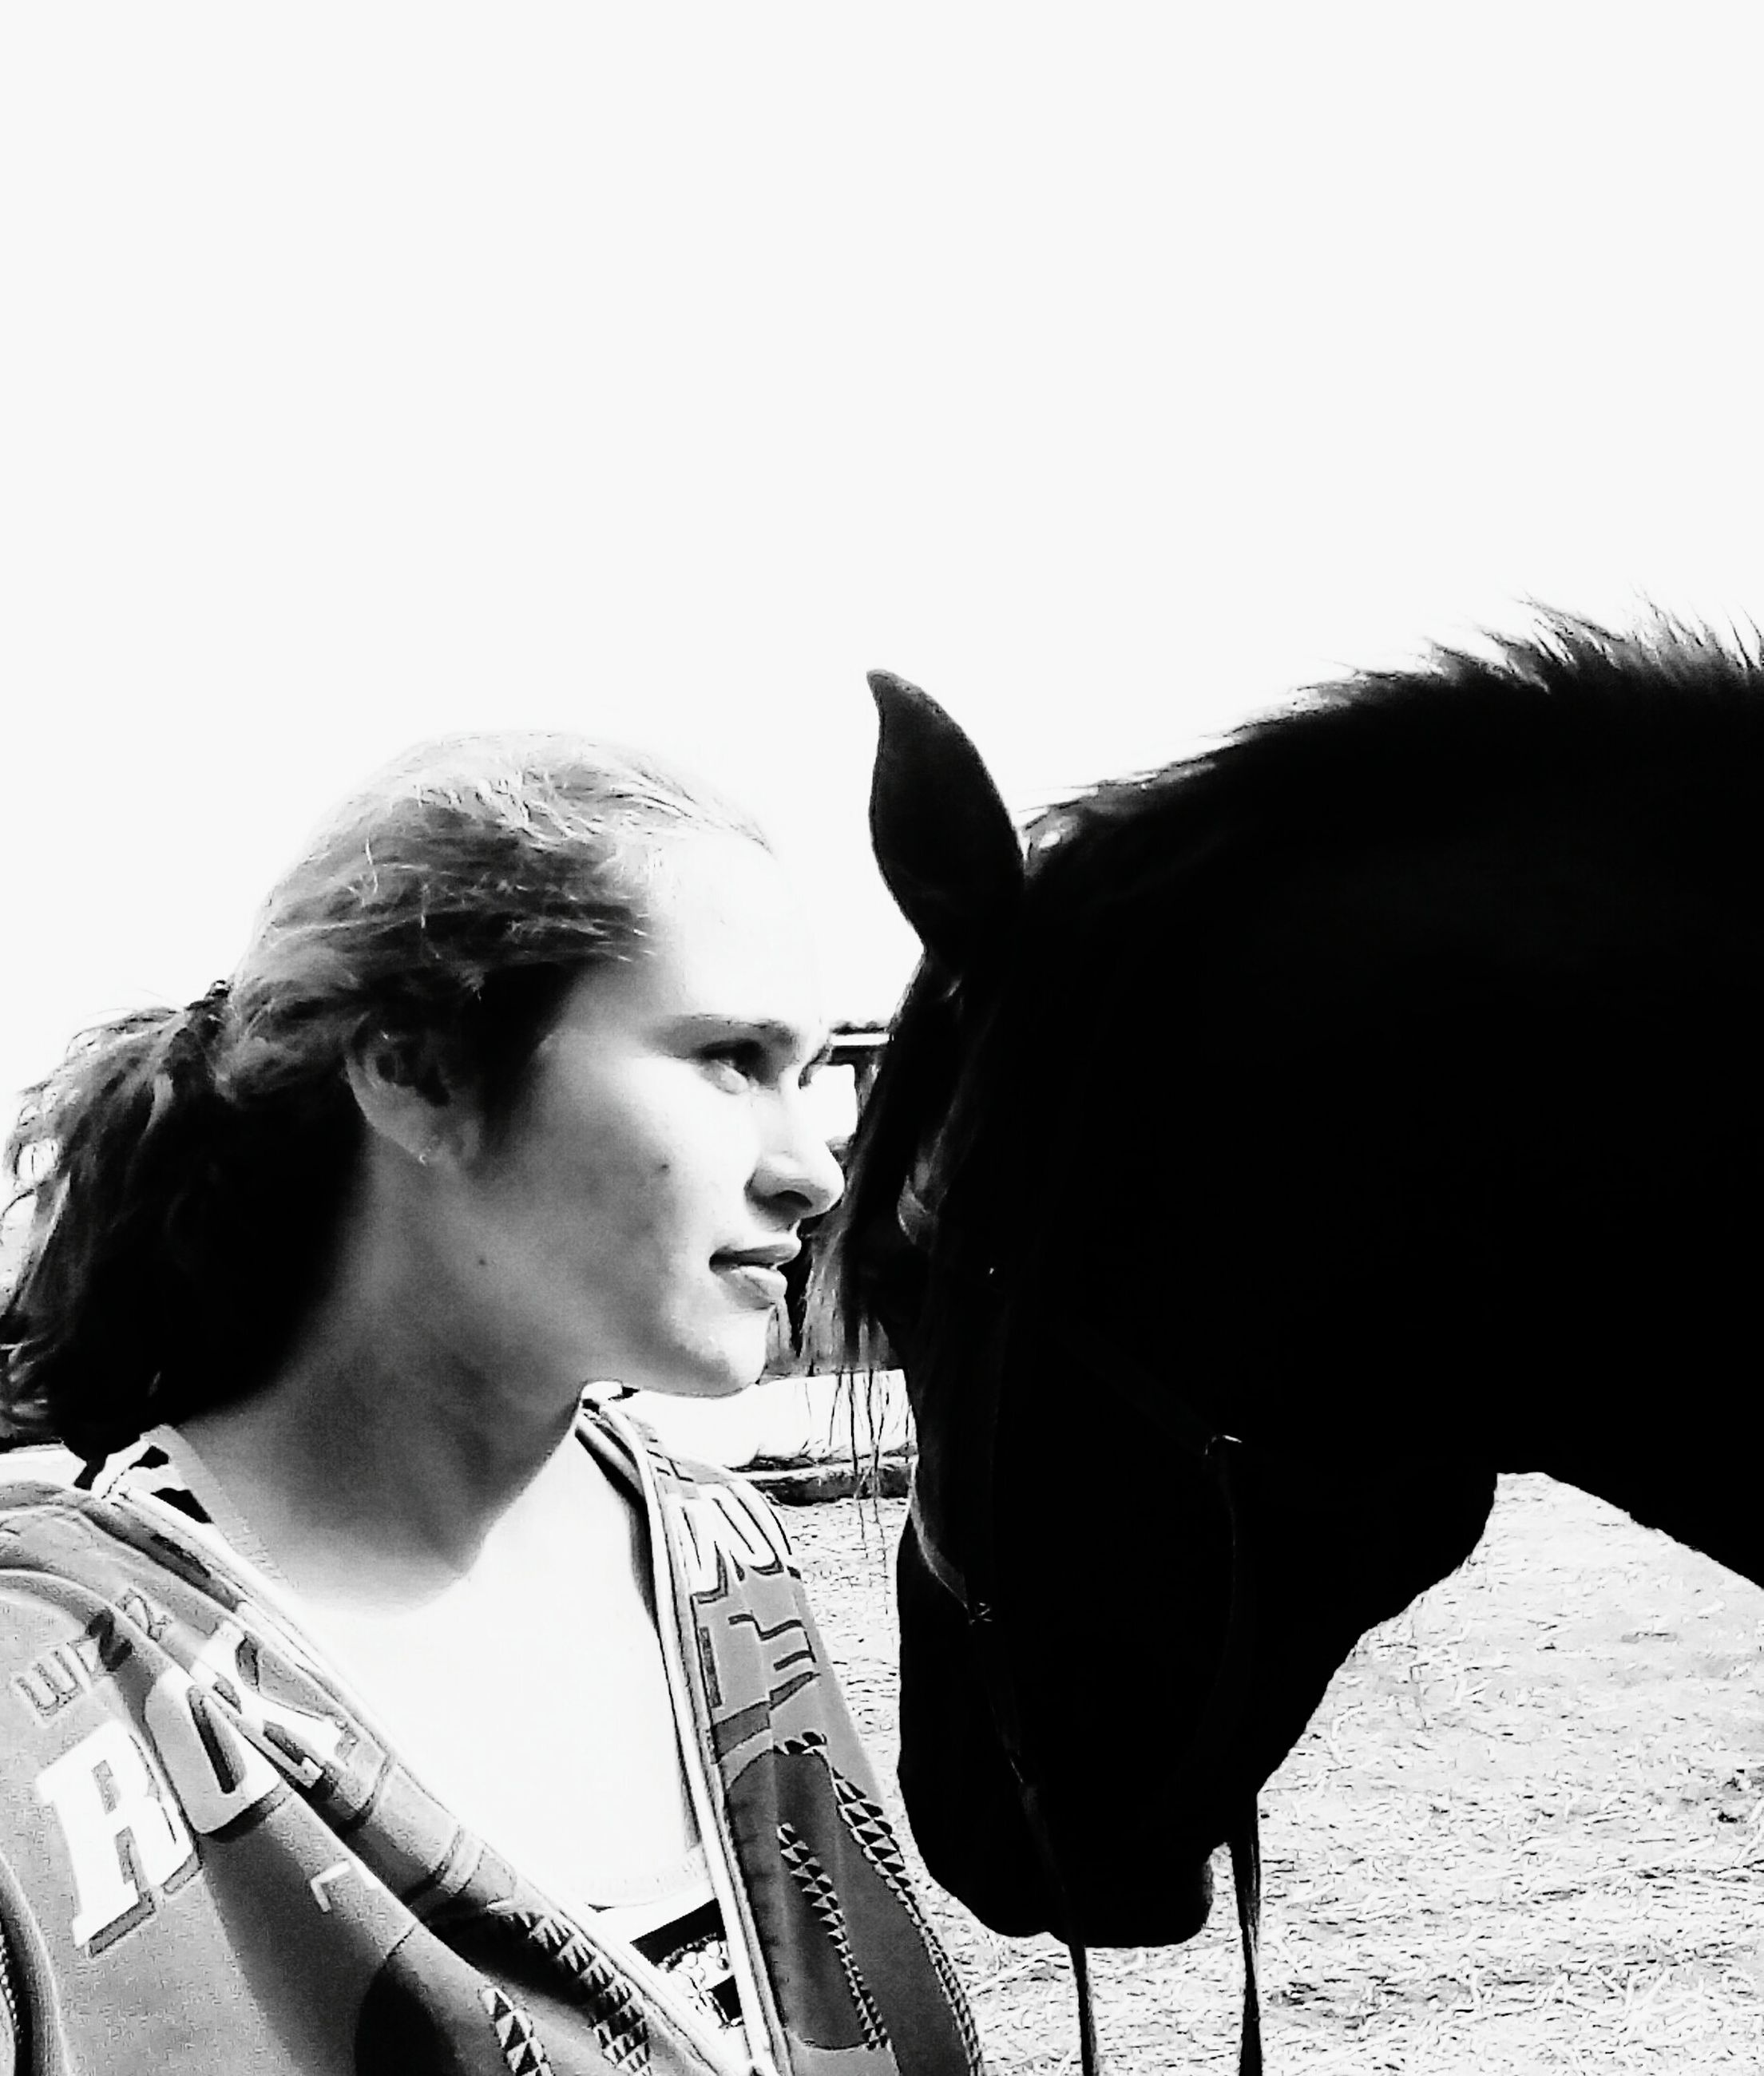 horse, domestic animals, mammal, animal themes, one animal, livestock, day, real people, young women, side view, one person, young adult, outdoors, clear sky